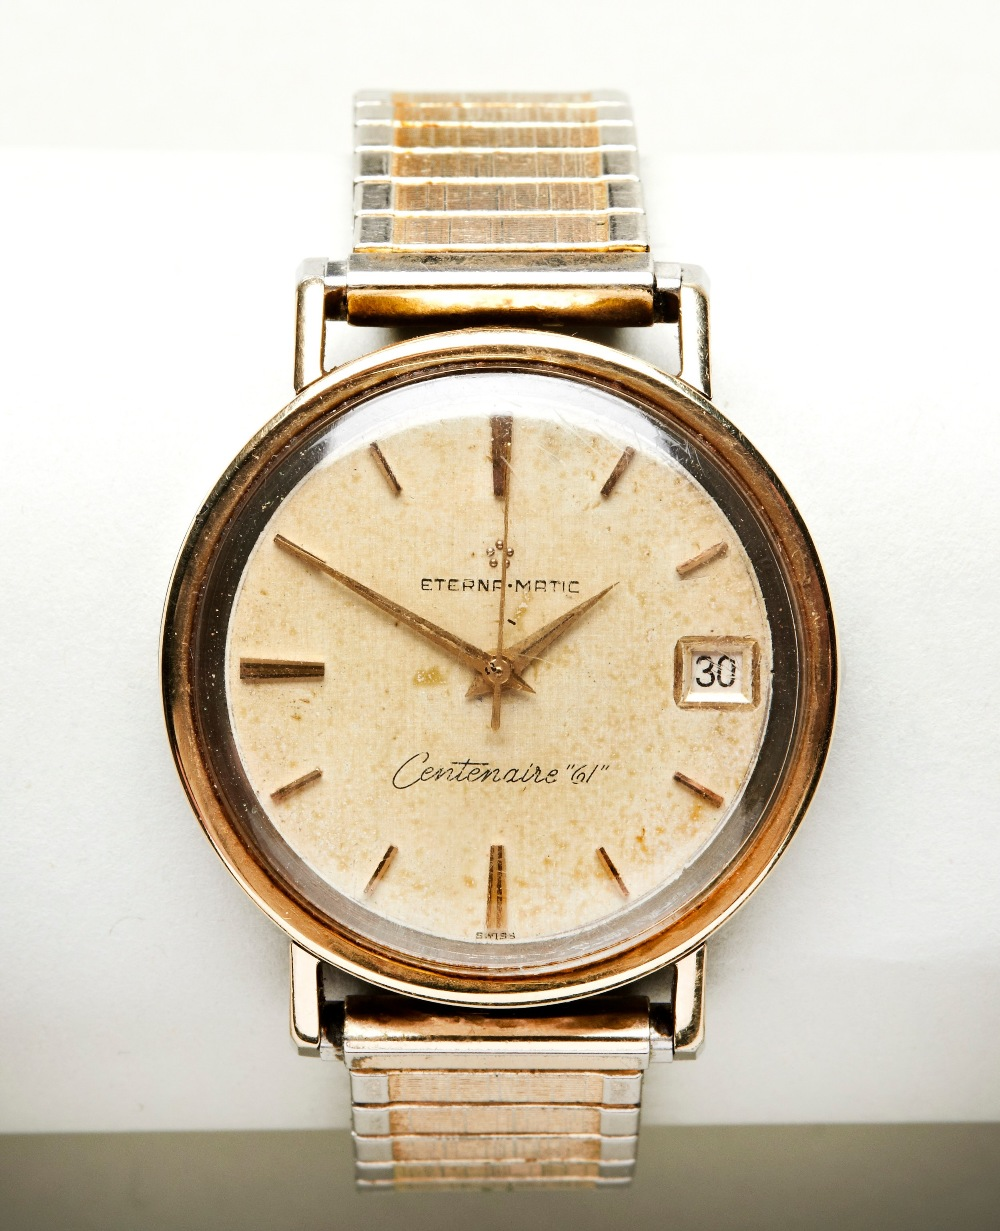 ETERNA MATIC GOLD-PLATED CENTENAIRE 61' BRACELET WRISTWATCH the champagne dial with baton numerals